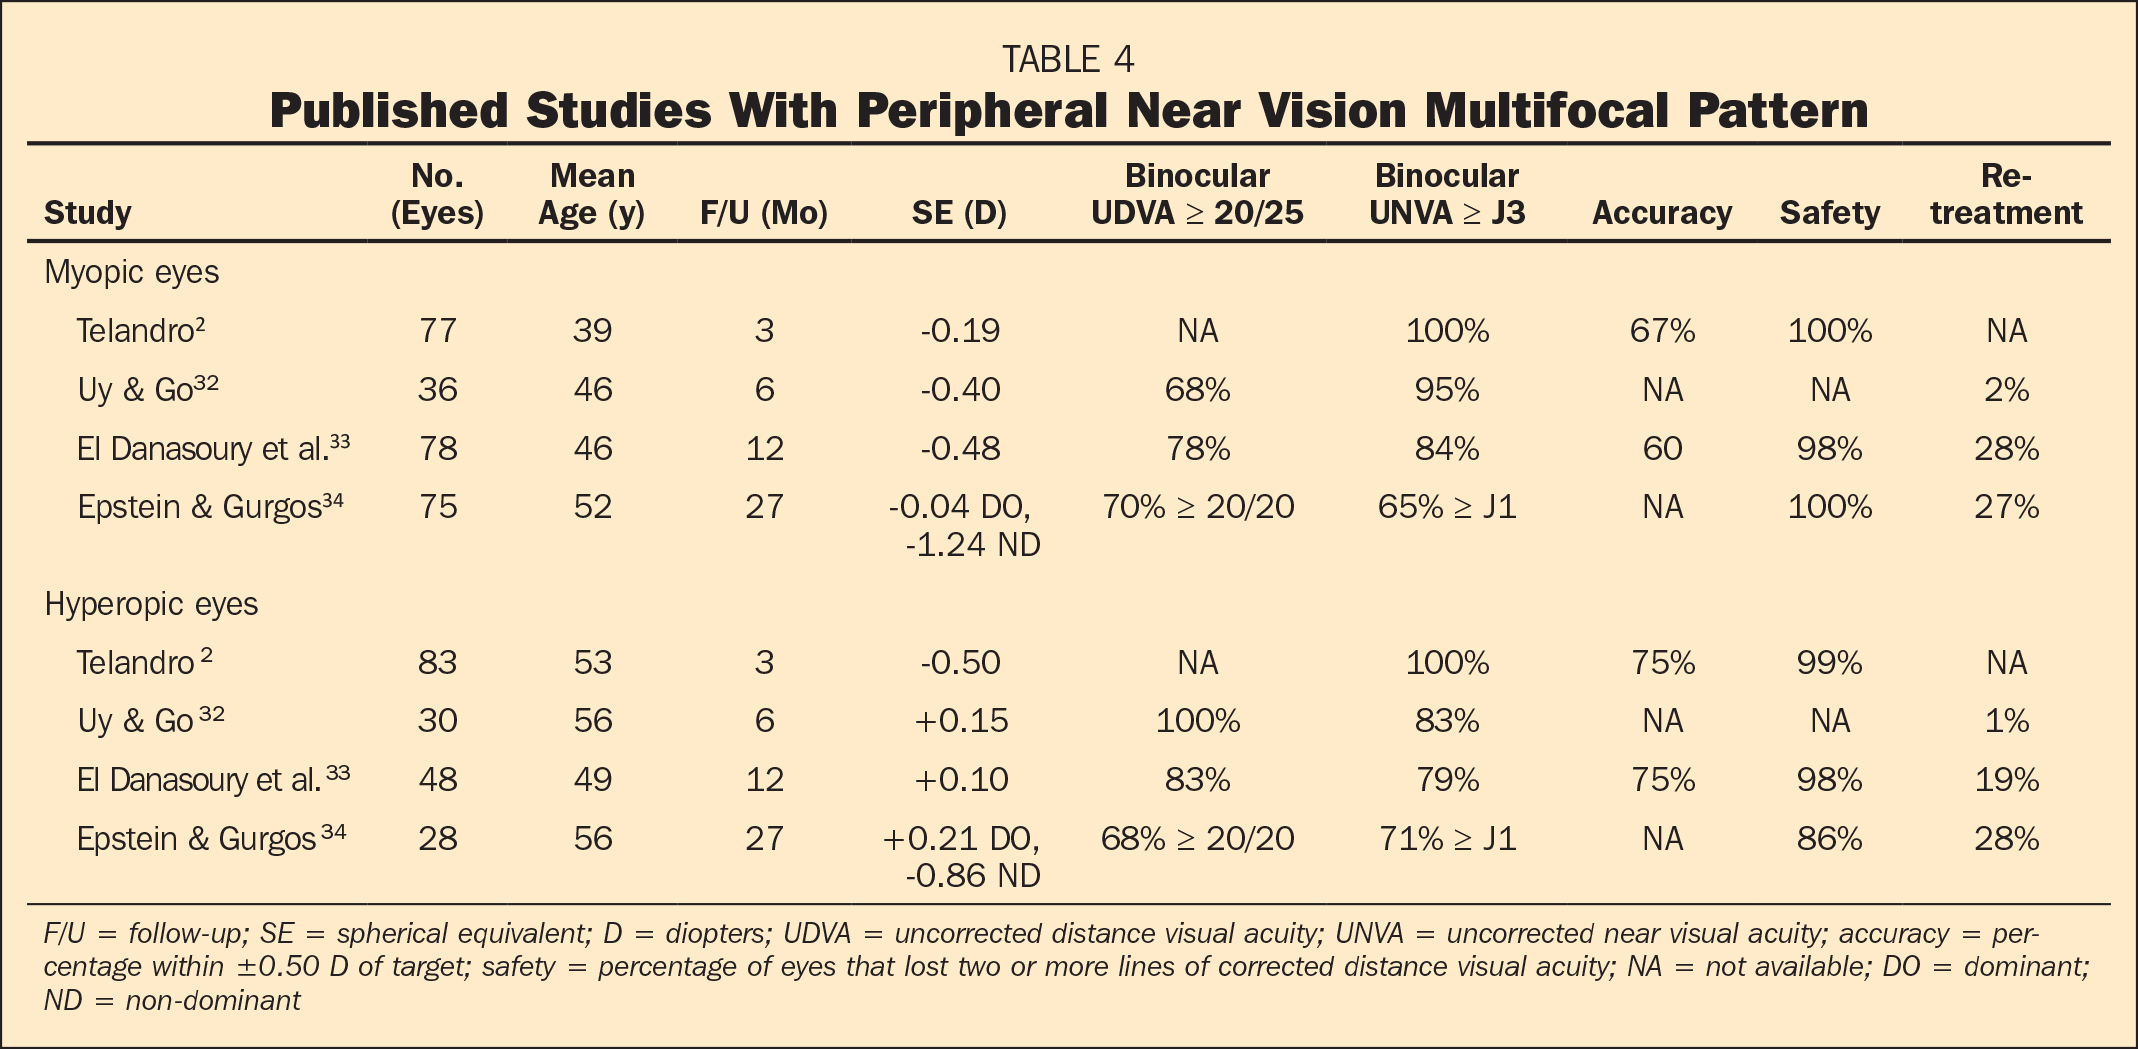 Published Studies With Peripheral Near Vision Multifocal Pattern